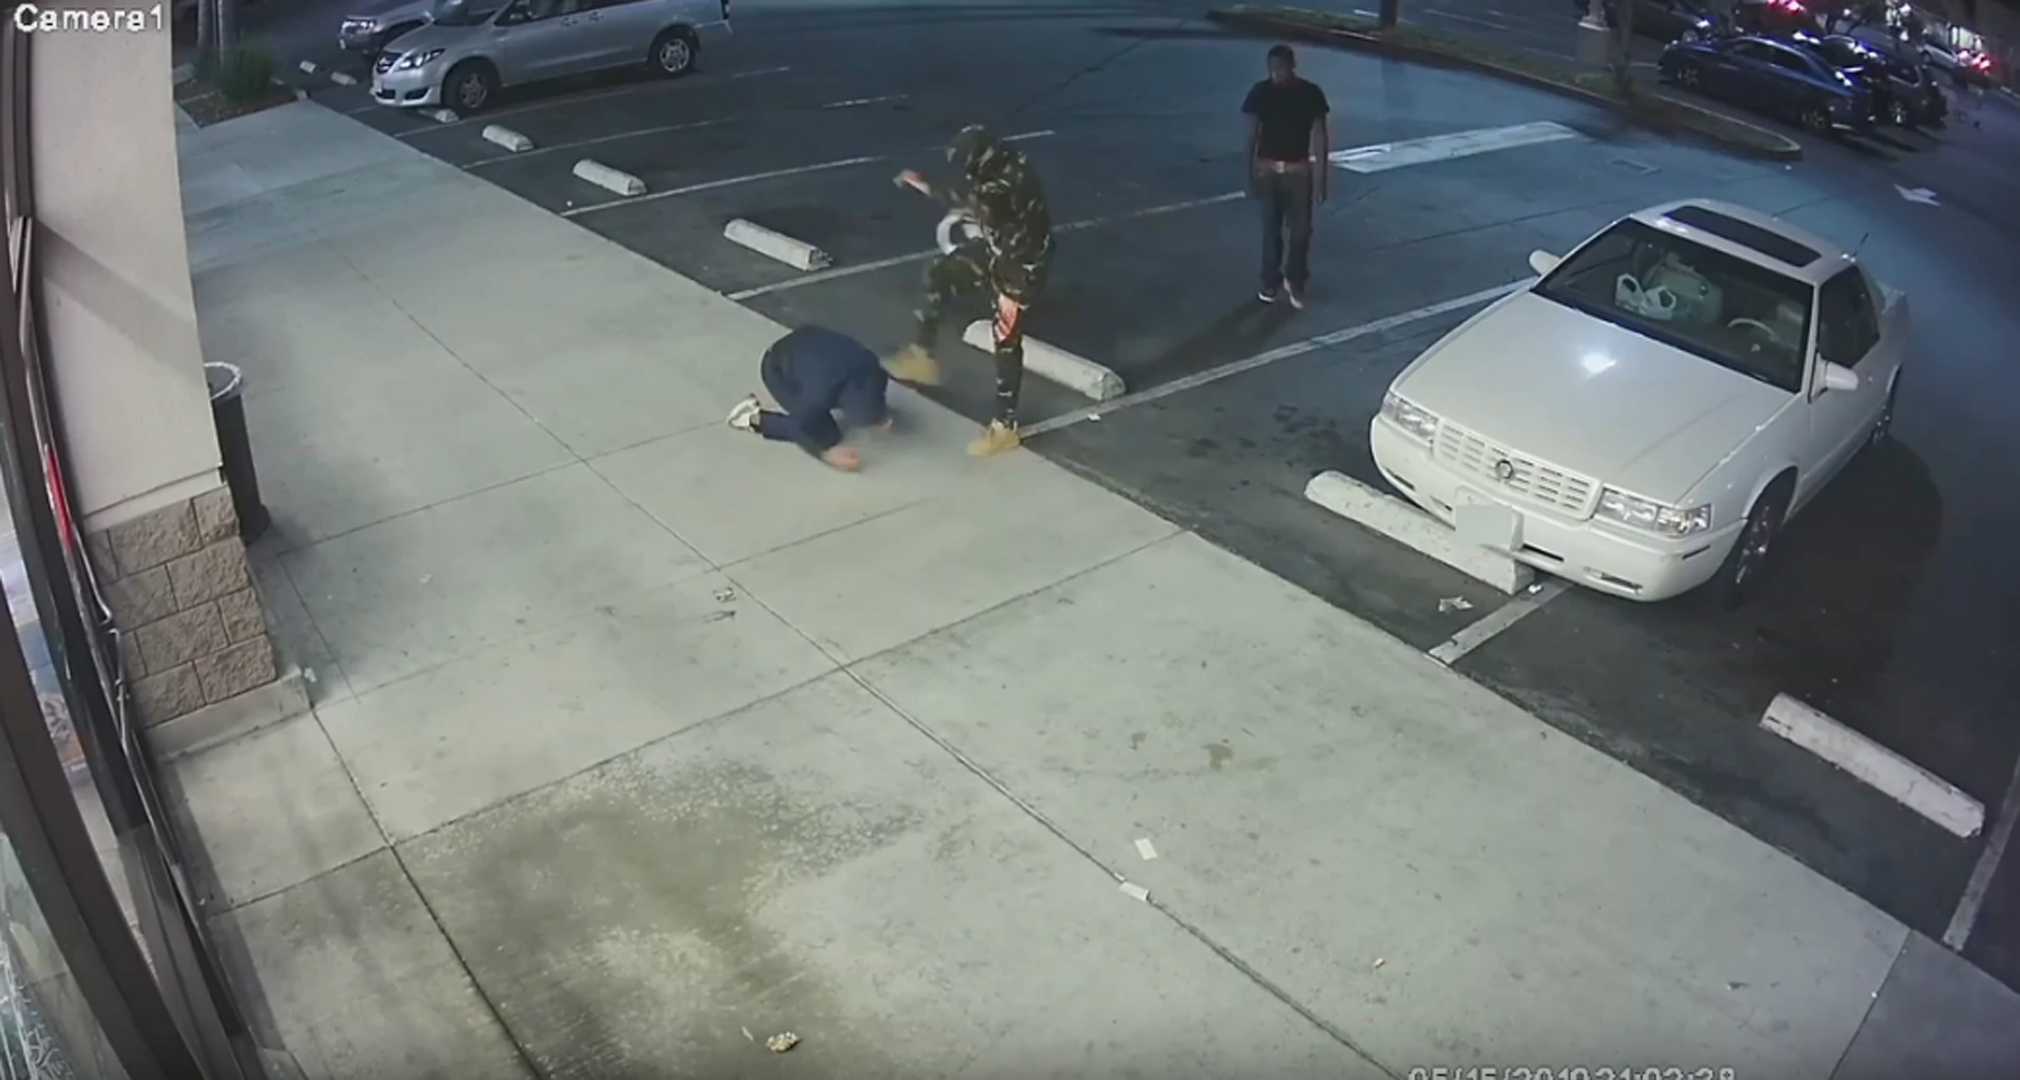 A robbery suspect was caught on video assaulting a victim on May 15, 2019 in this still from video provided by Long Beach police.